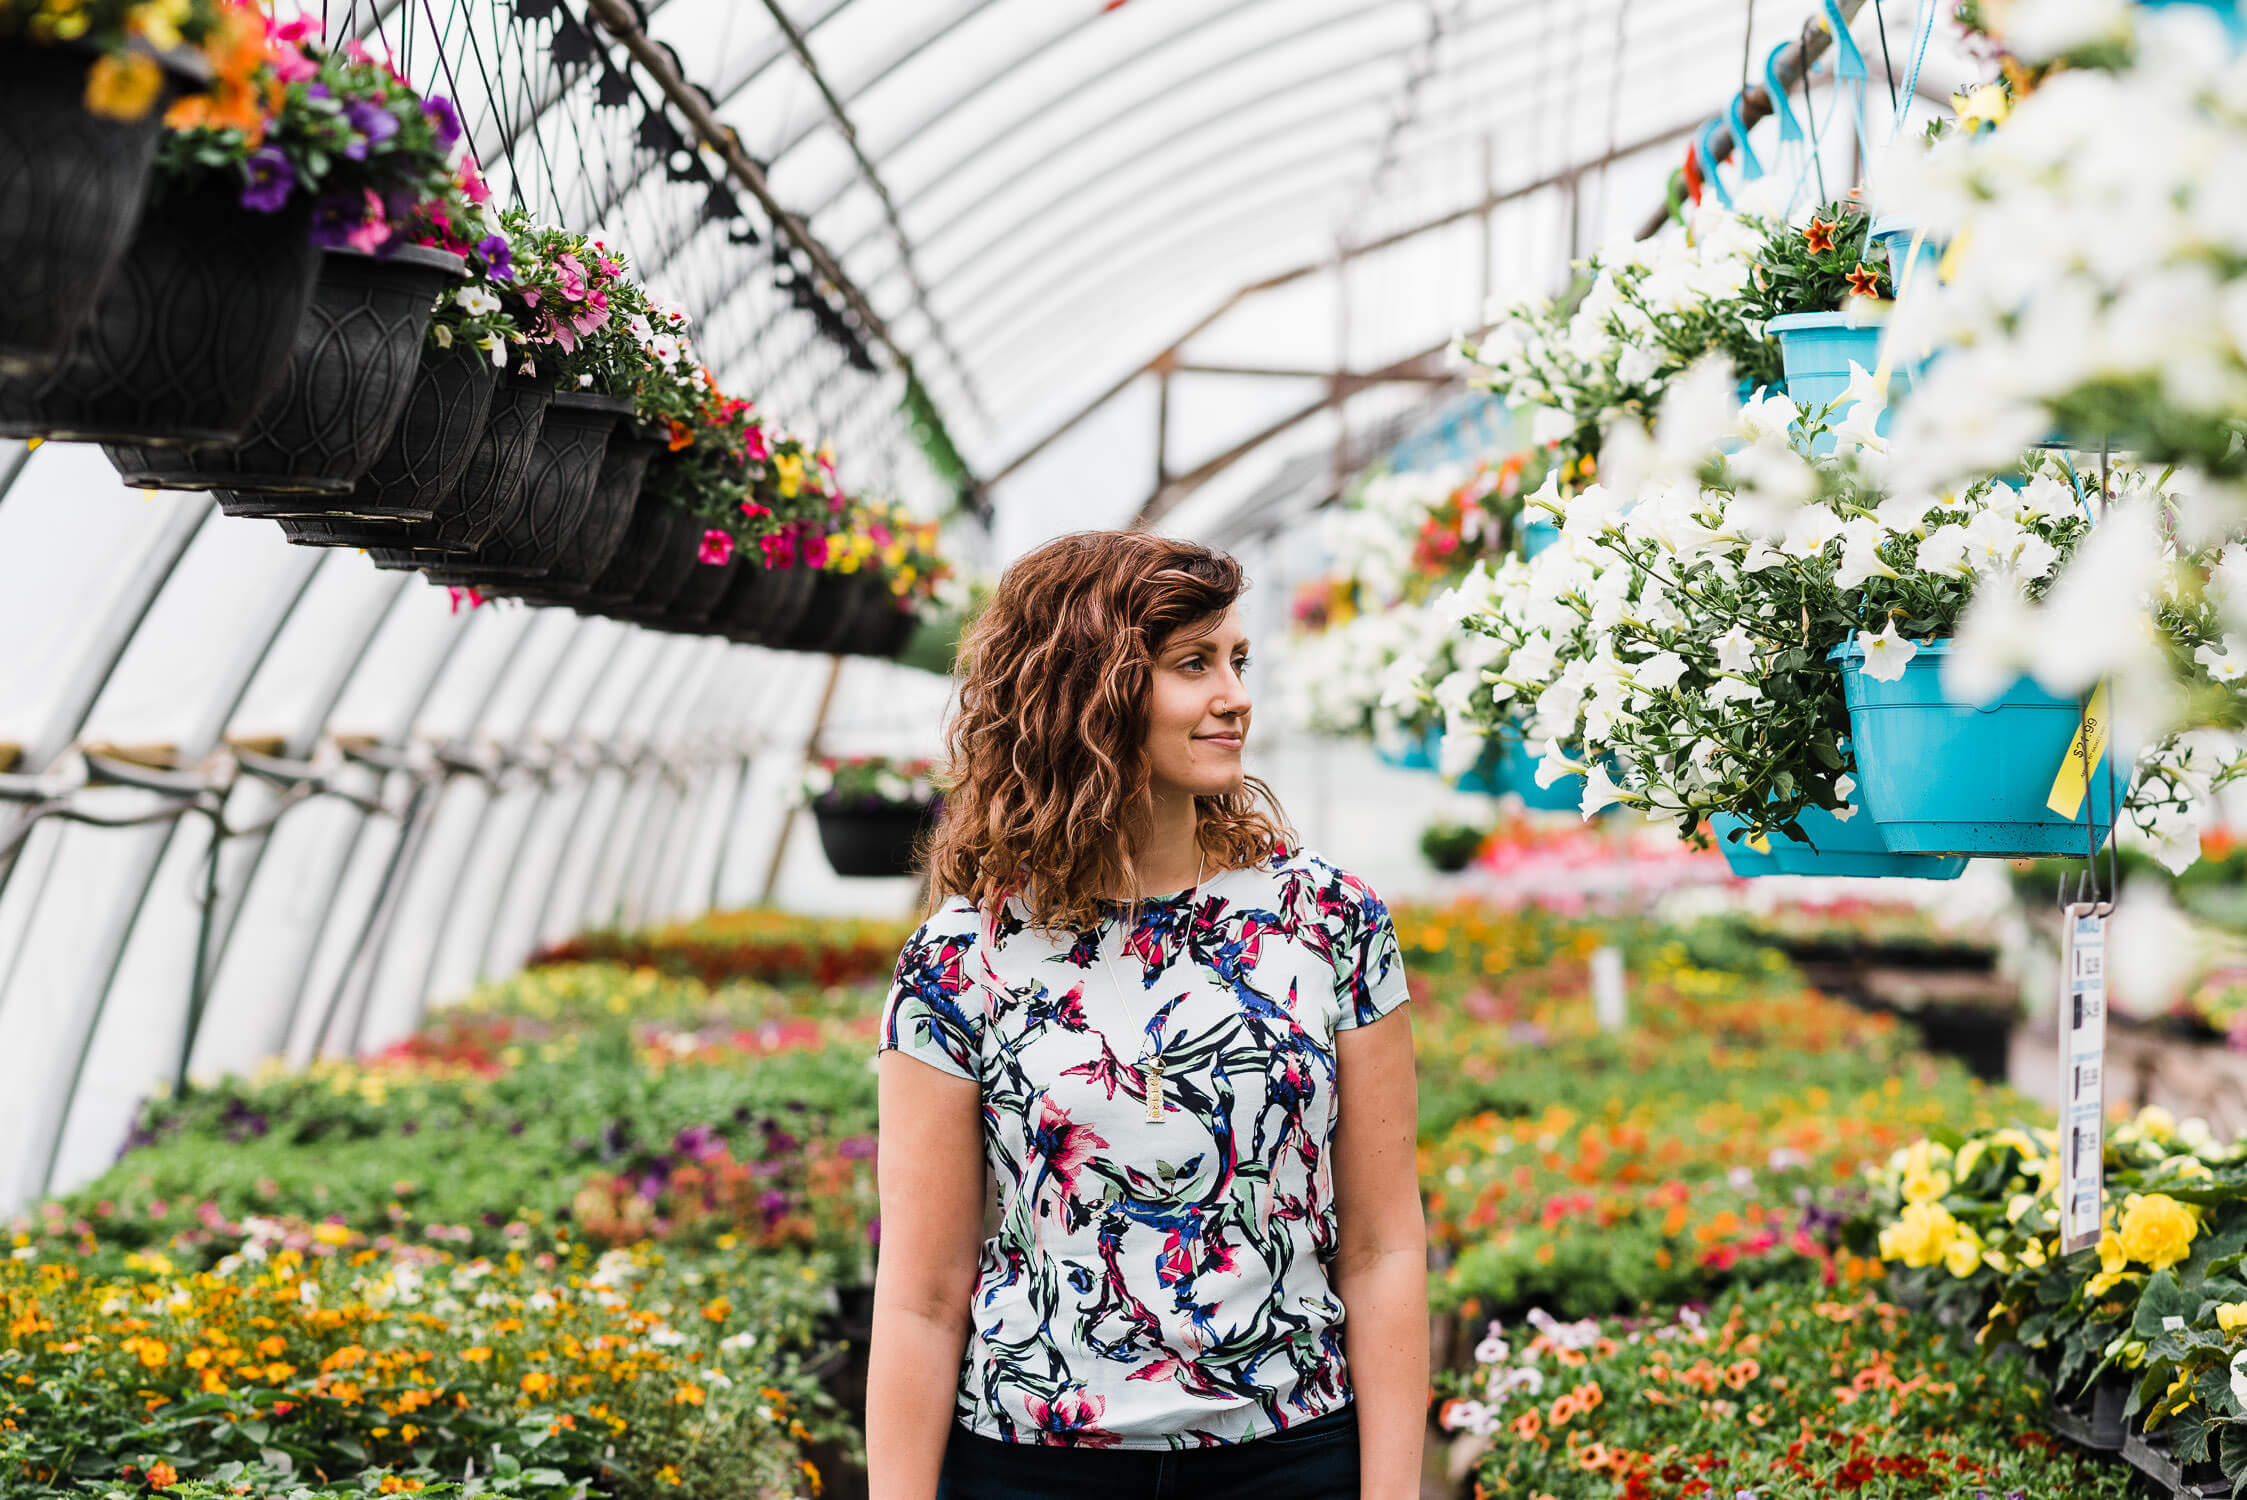 Young woman wearing colourful shirt stands in greenhouse full of colourful flowers